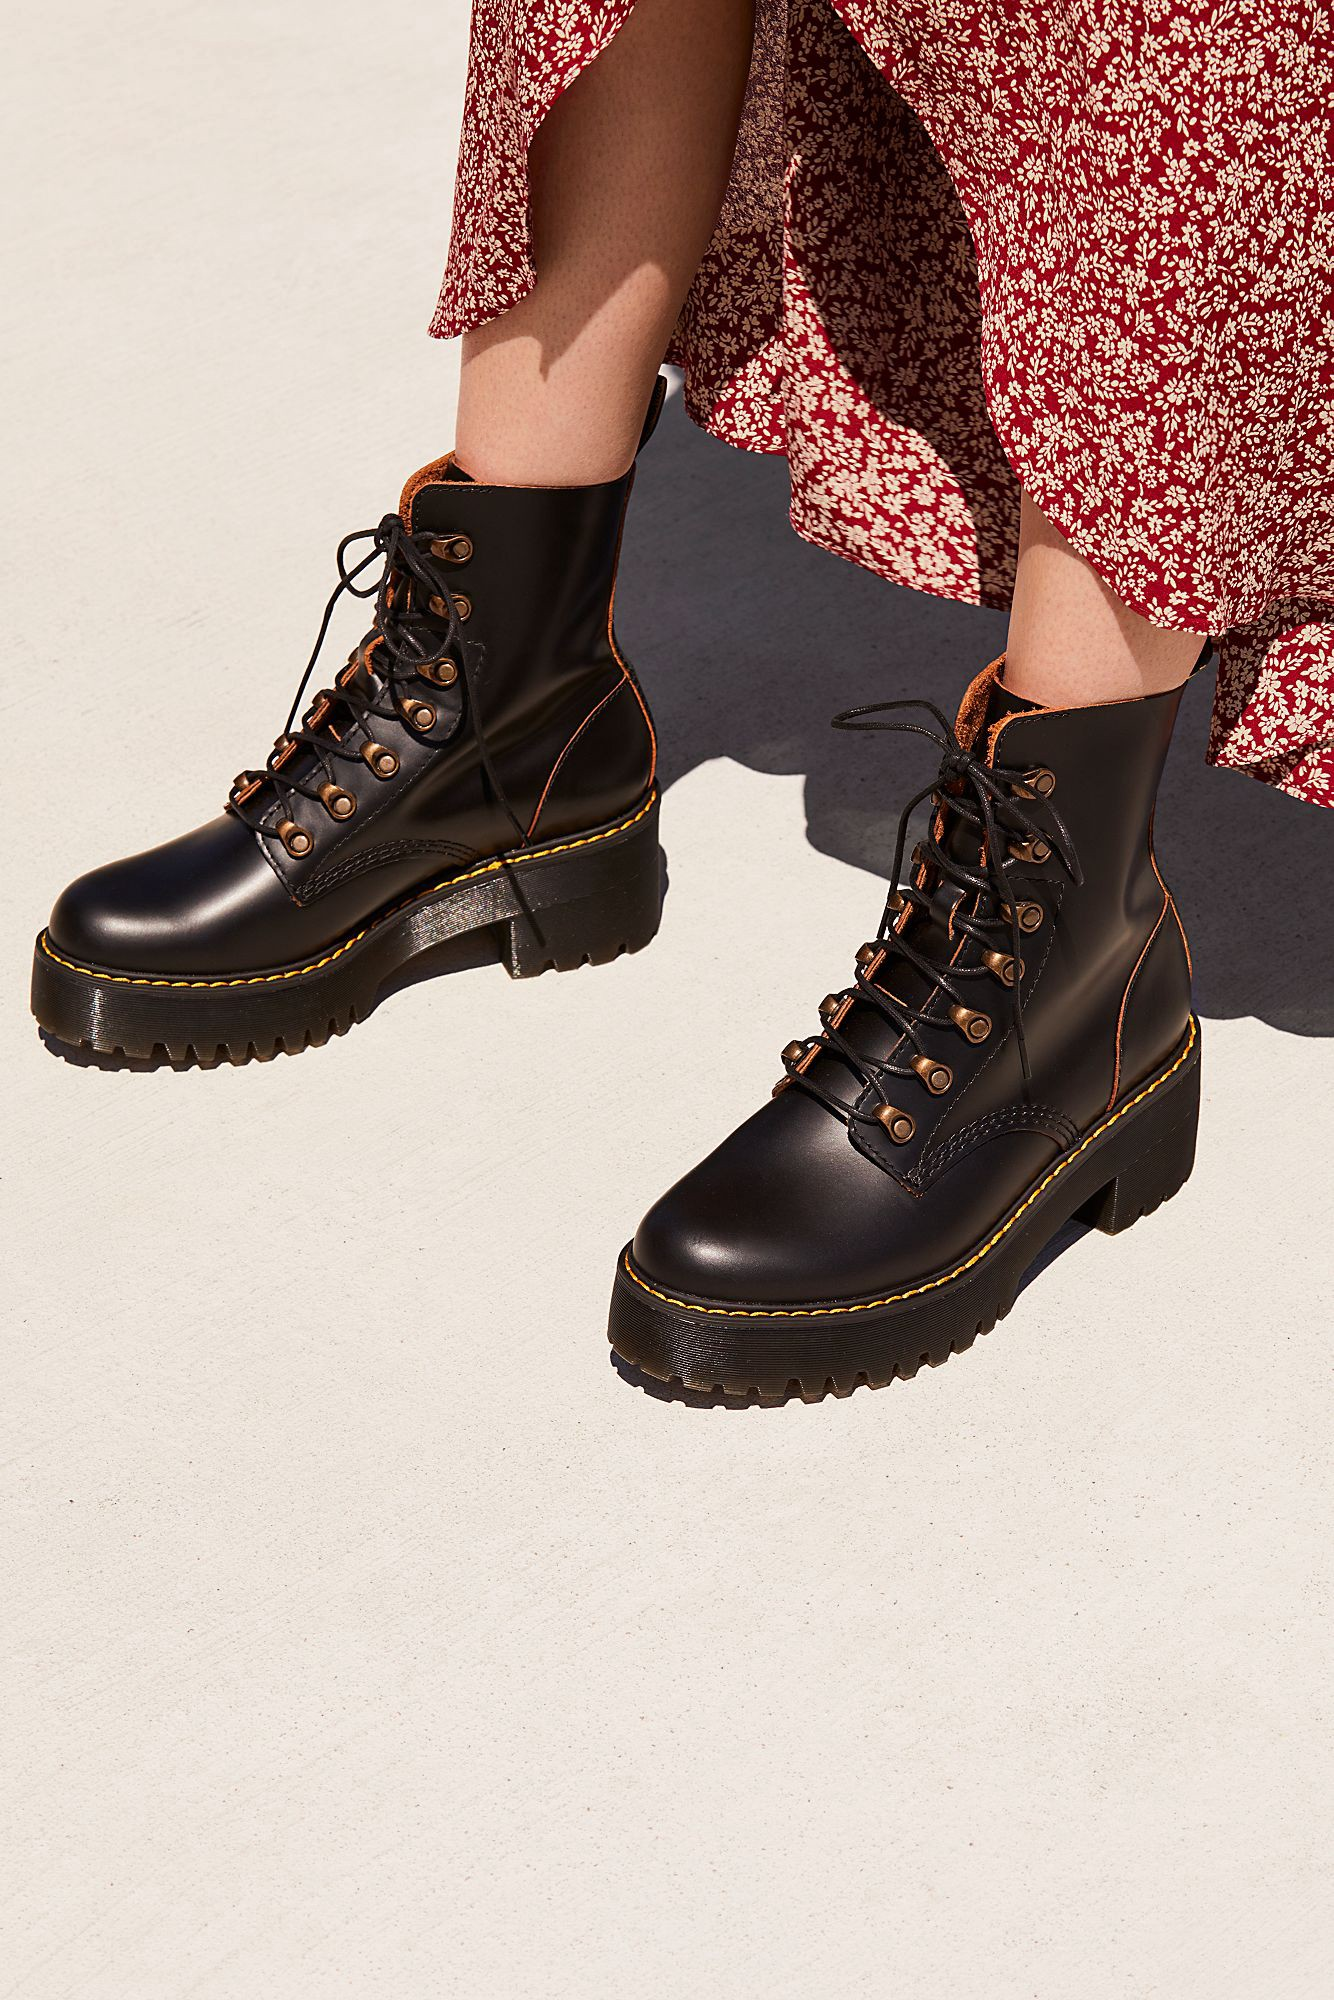 47634e6fb5ac ... and ankle boots for women. Free People Dr. Martens Leona Platform Ankle  Boot - Bone 11 Yellow